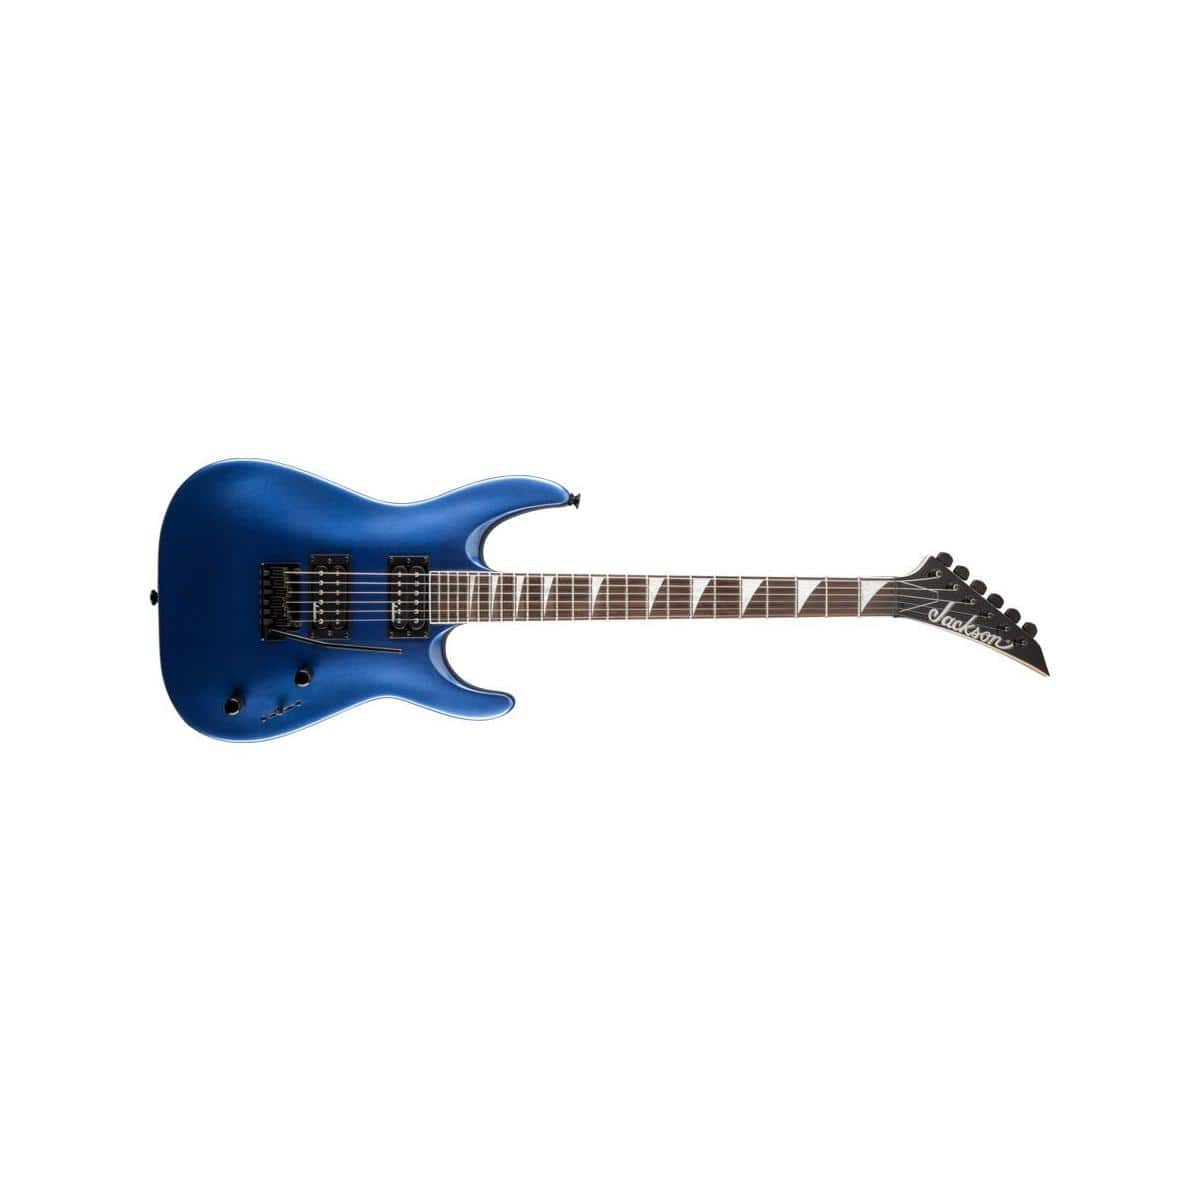 Jackson Electric Guitars: JS22 Dinky Arch Top (Metallic Blue) or Jackson JS22-7 Dinky (Satin Black) $145 each + free s/h